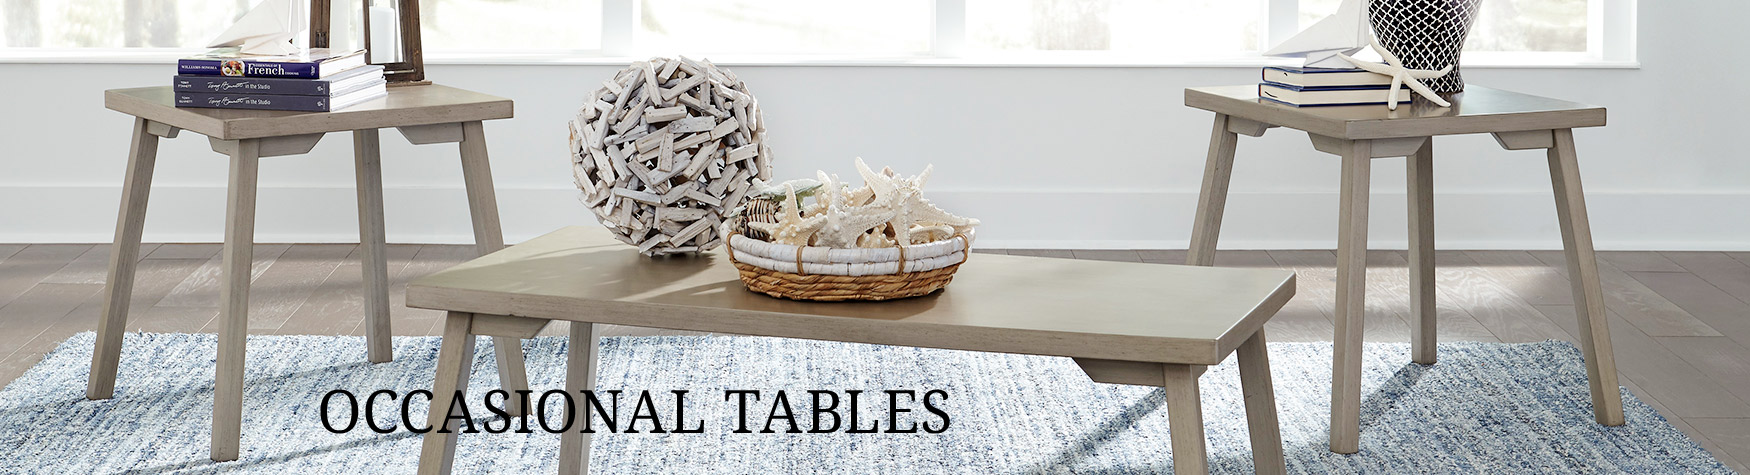 occasional-tables-banner-1.jpg